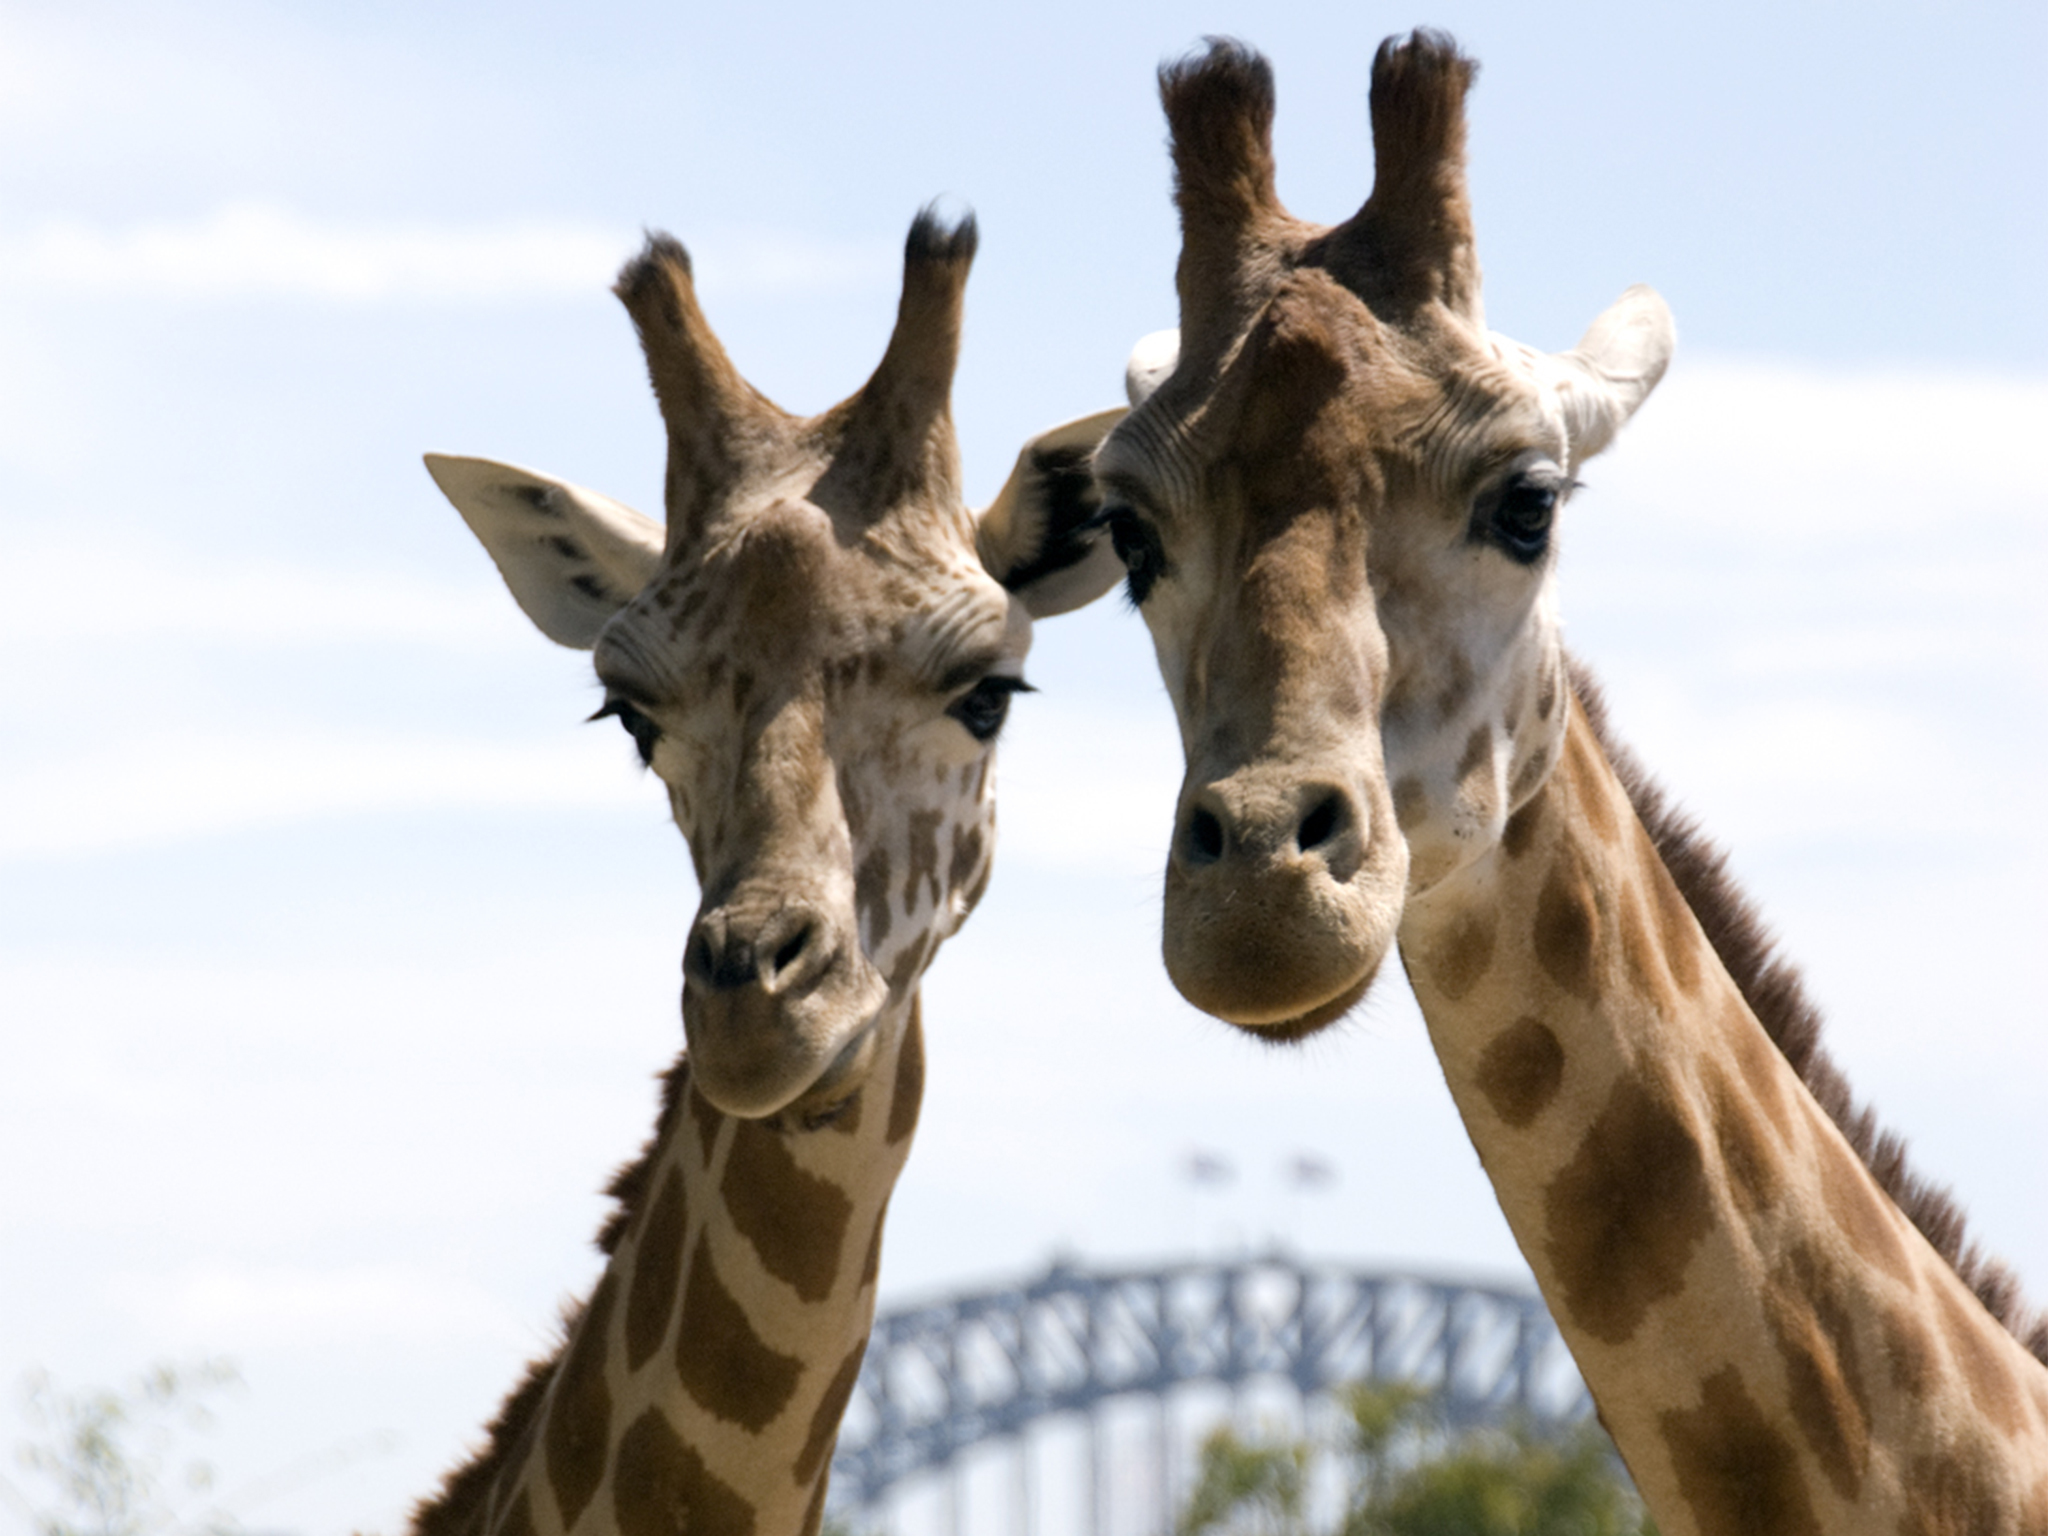 The best activities for kids in Sydney